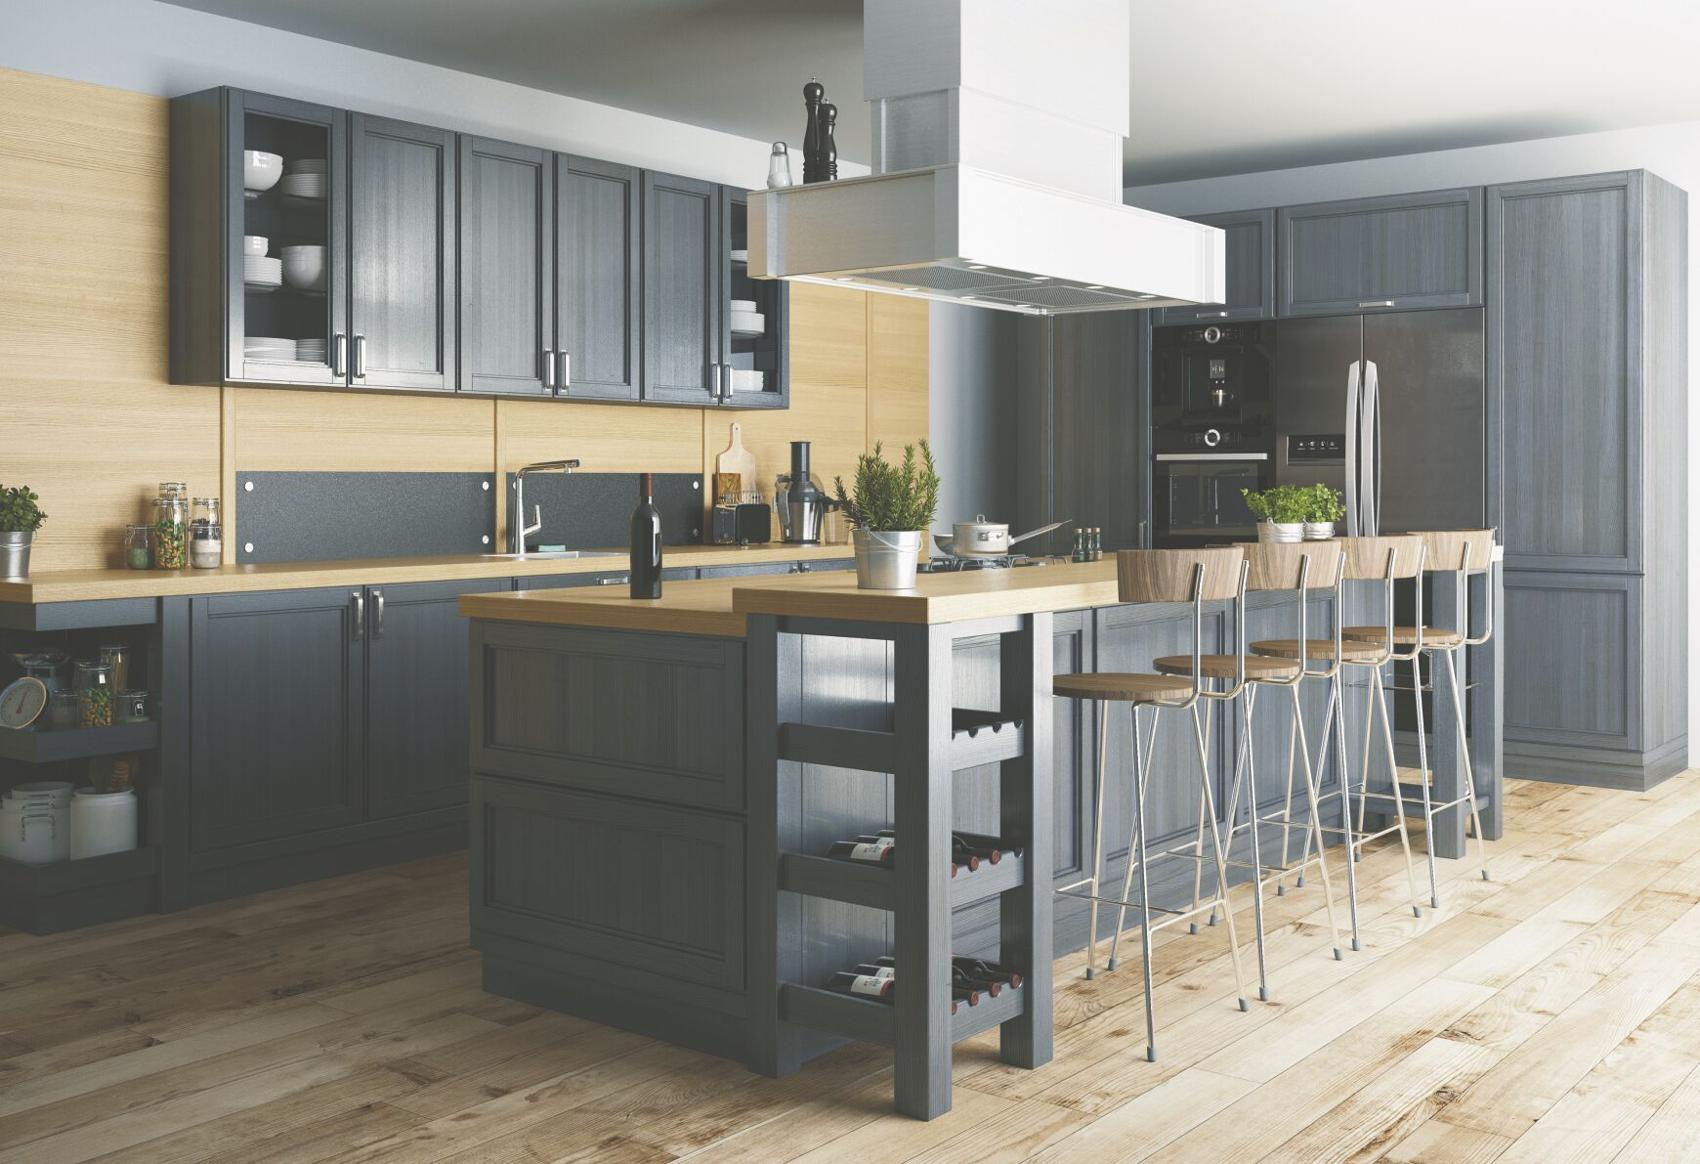 5 kitchen upgrades to increase joy and well-being